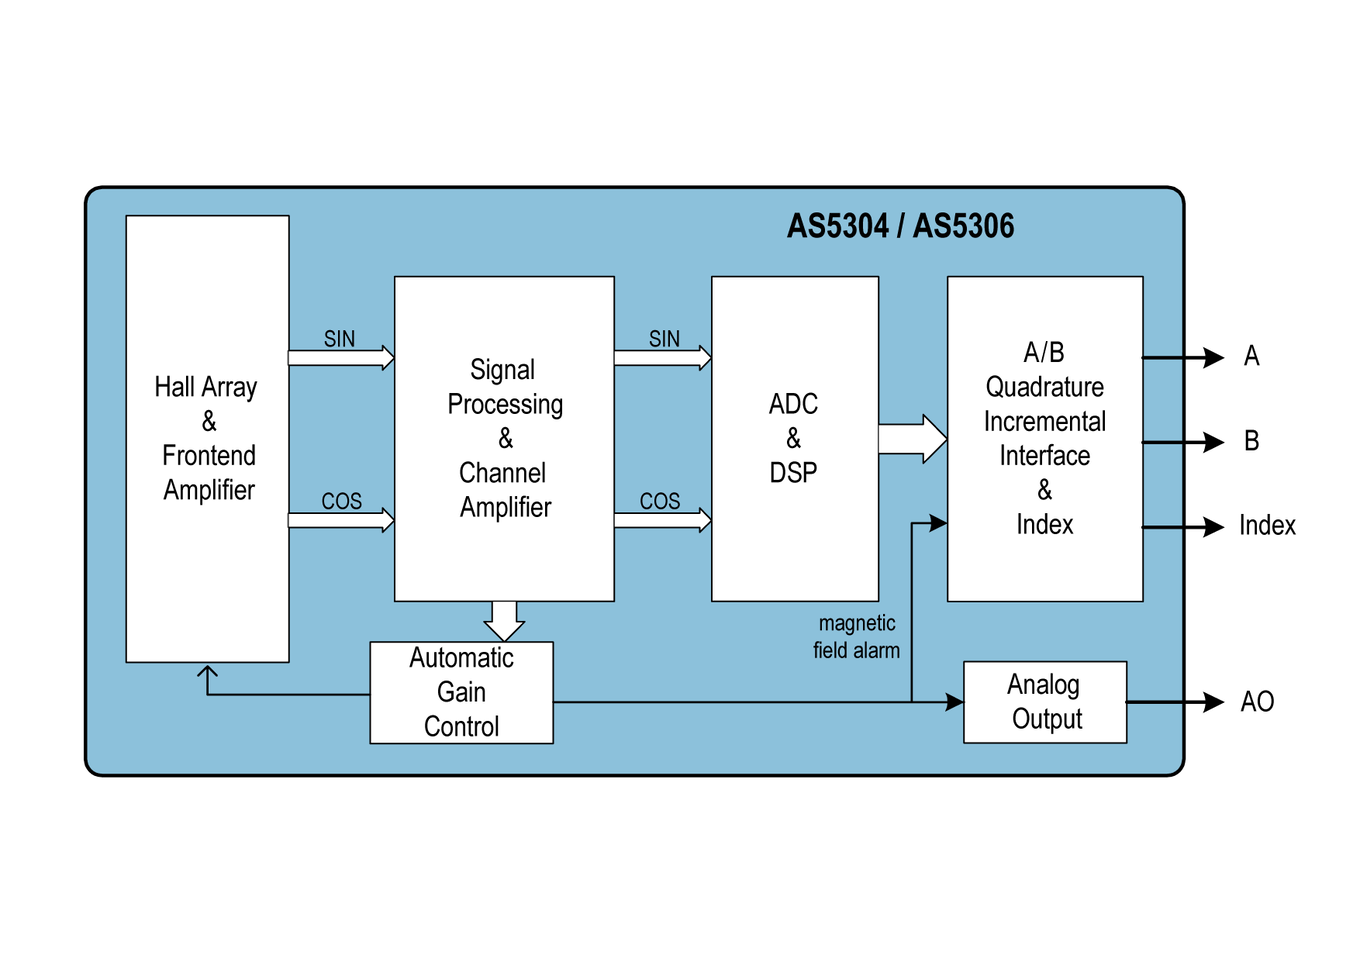 AS5304_AS5306 Block Diagram